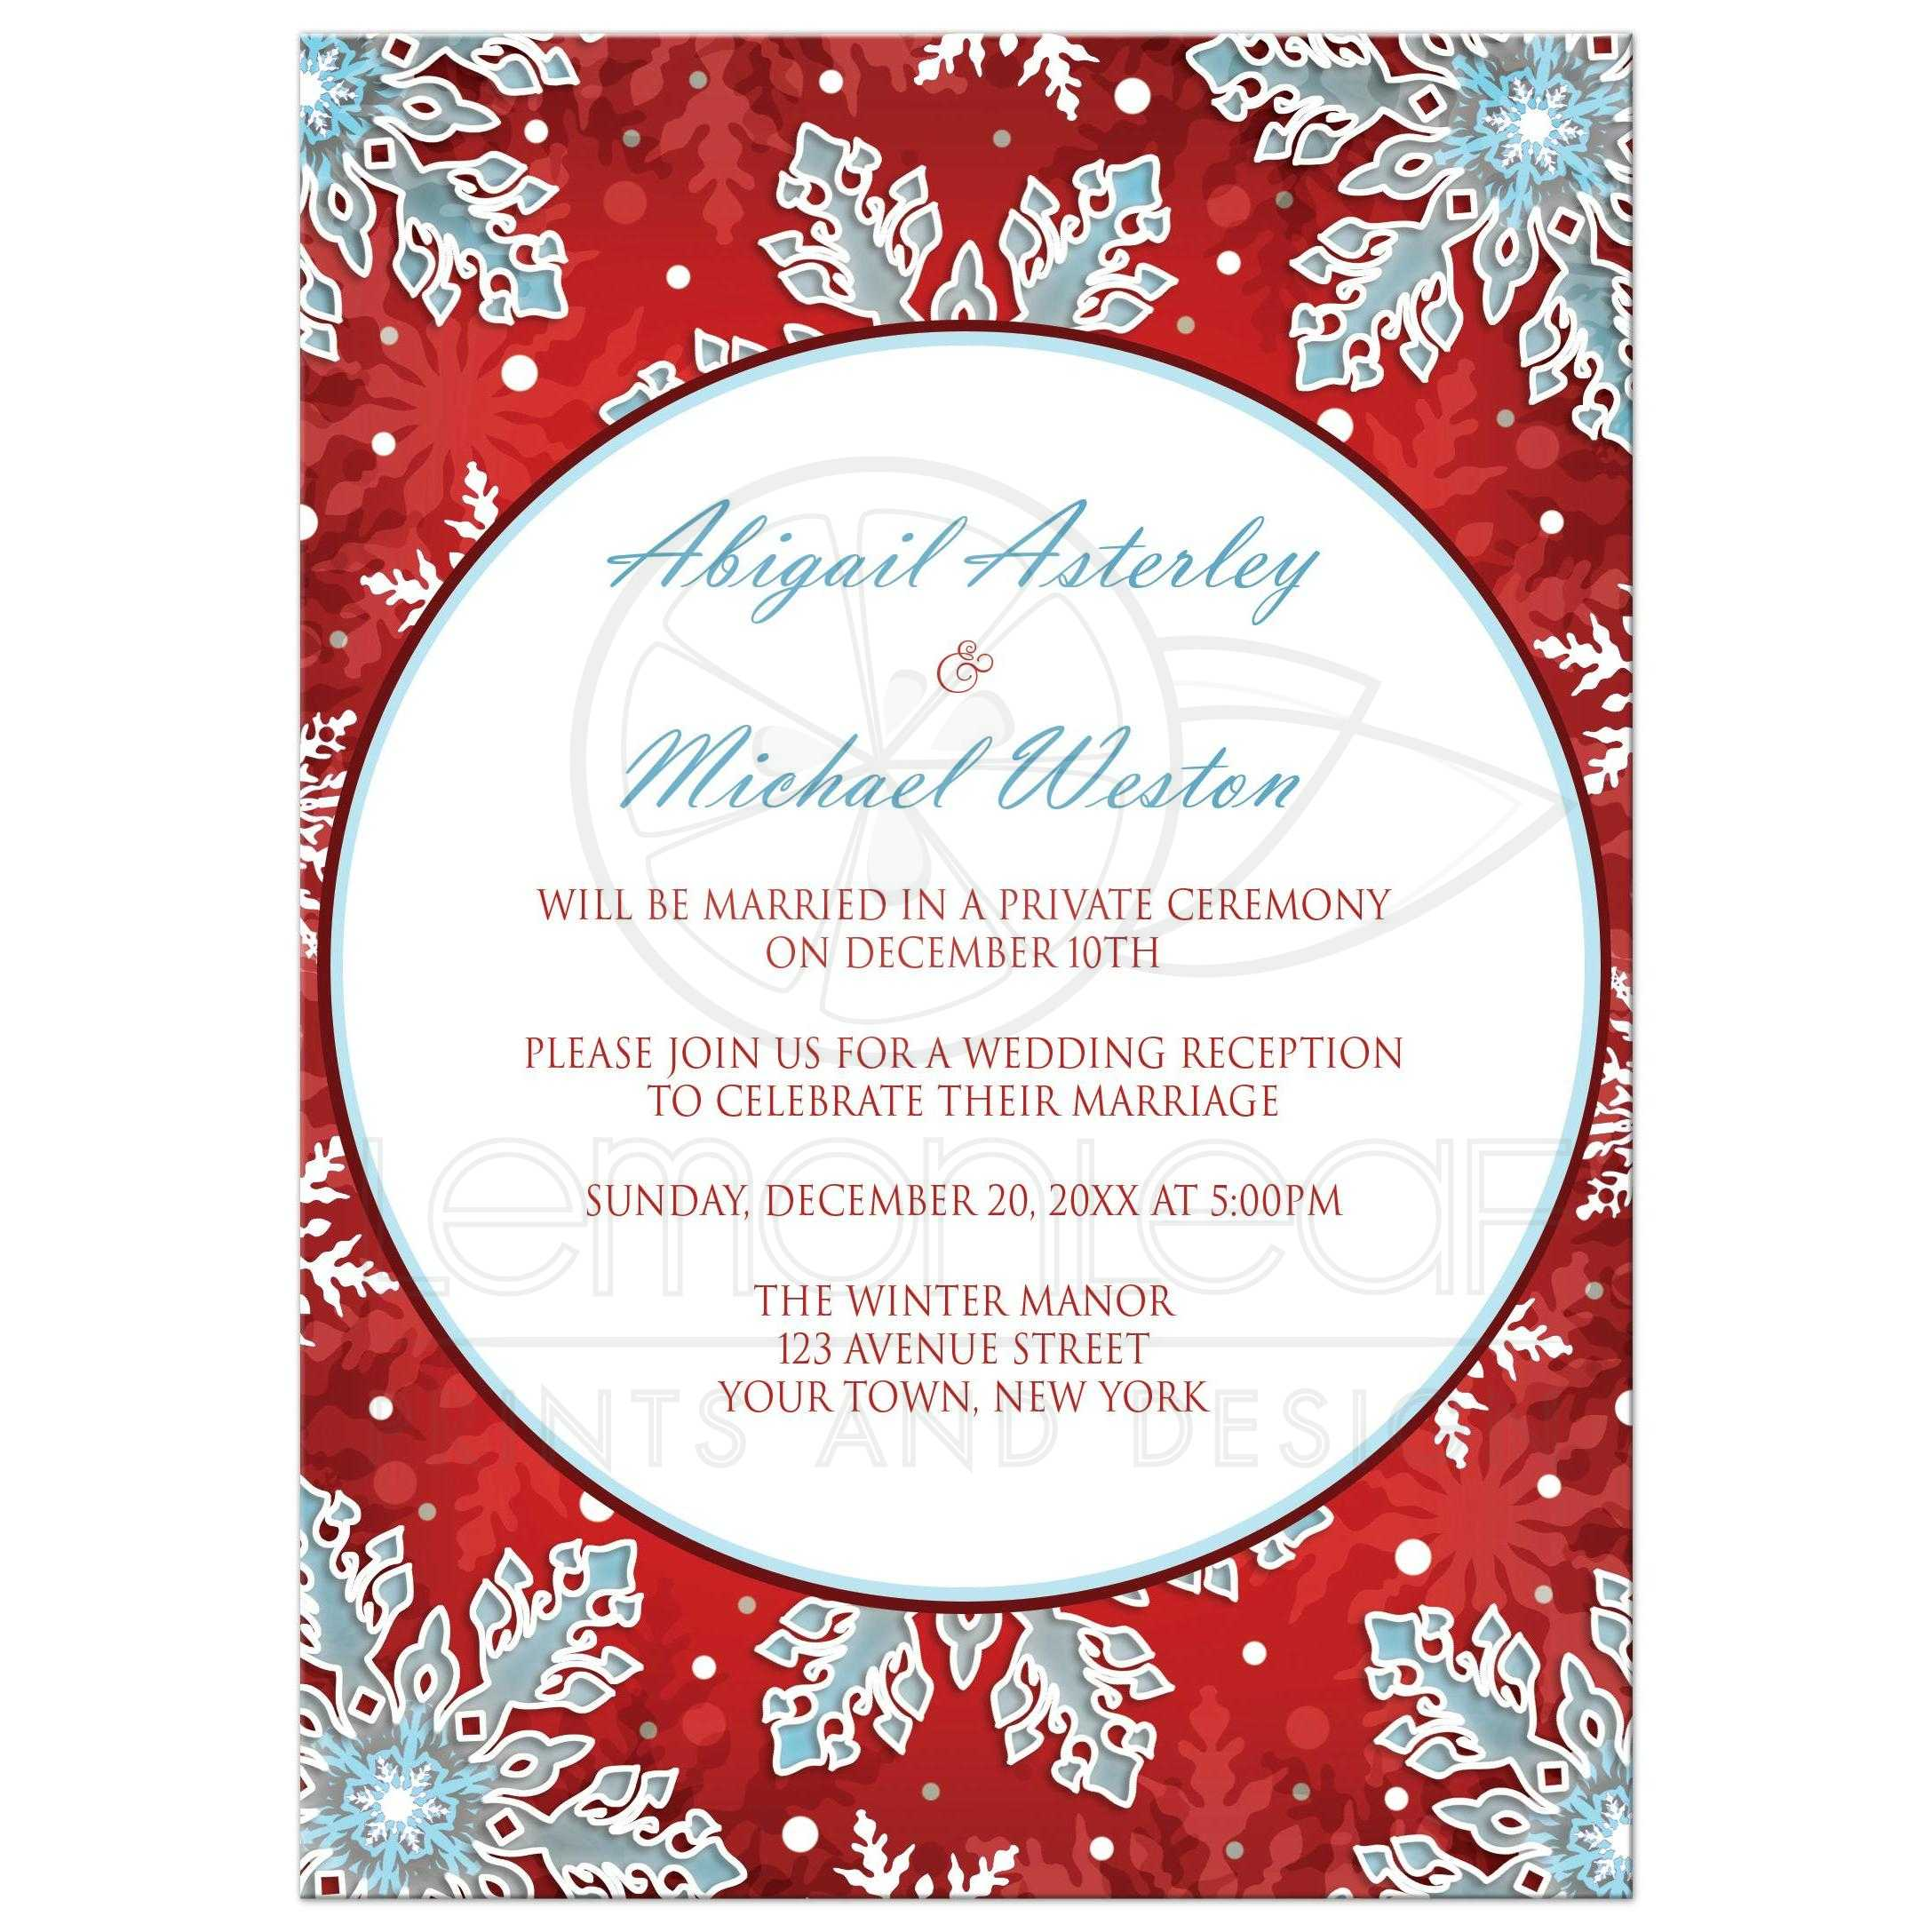 Reception Only Invitations - Modern Red White Blue Snowflake